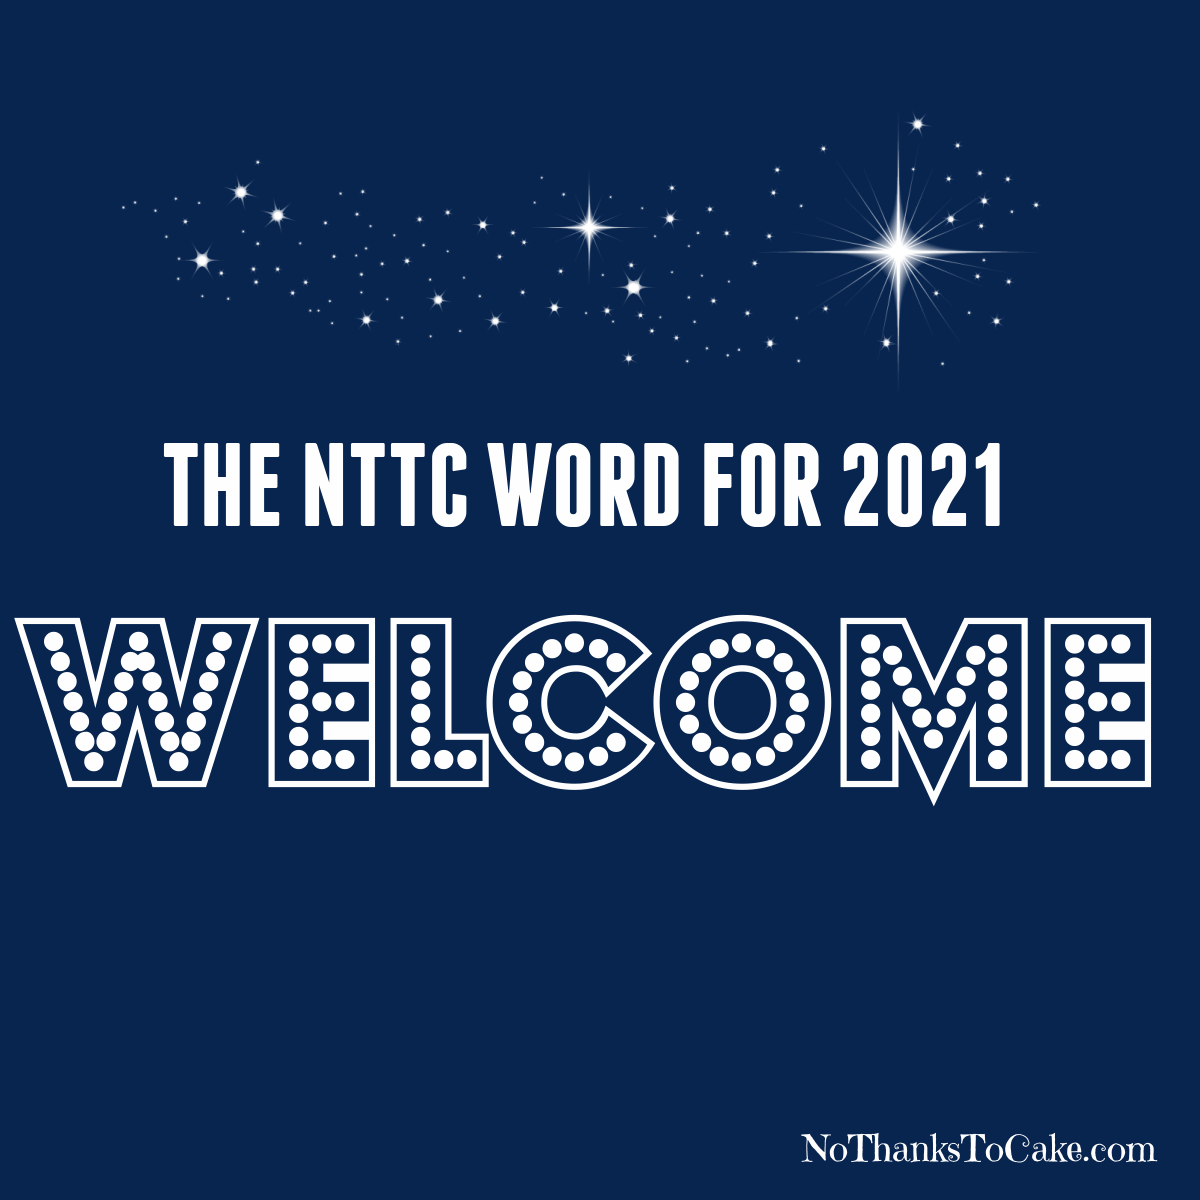 My Word for 2021: Welcome